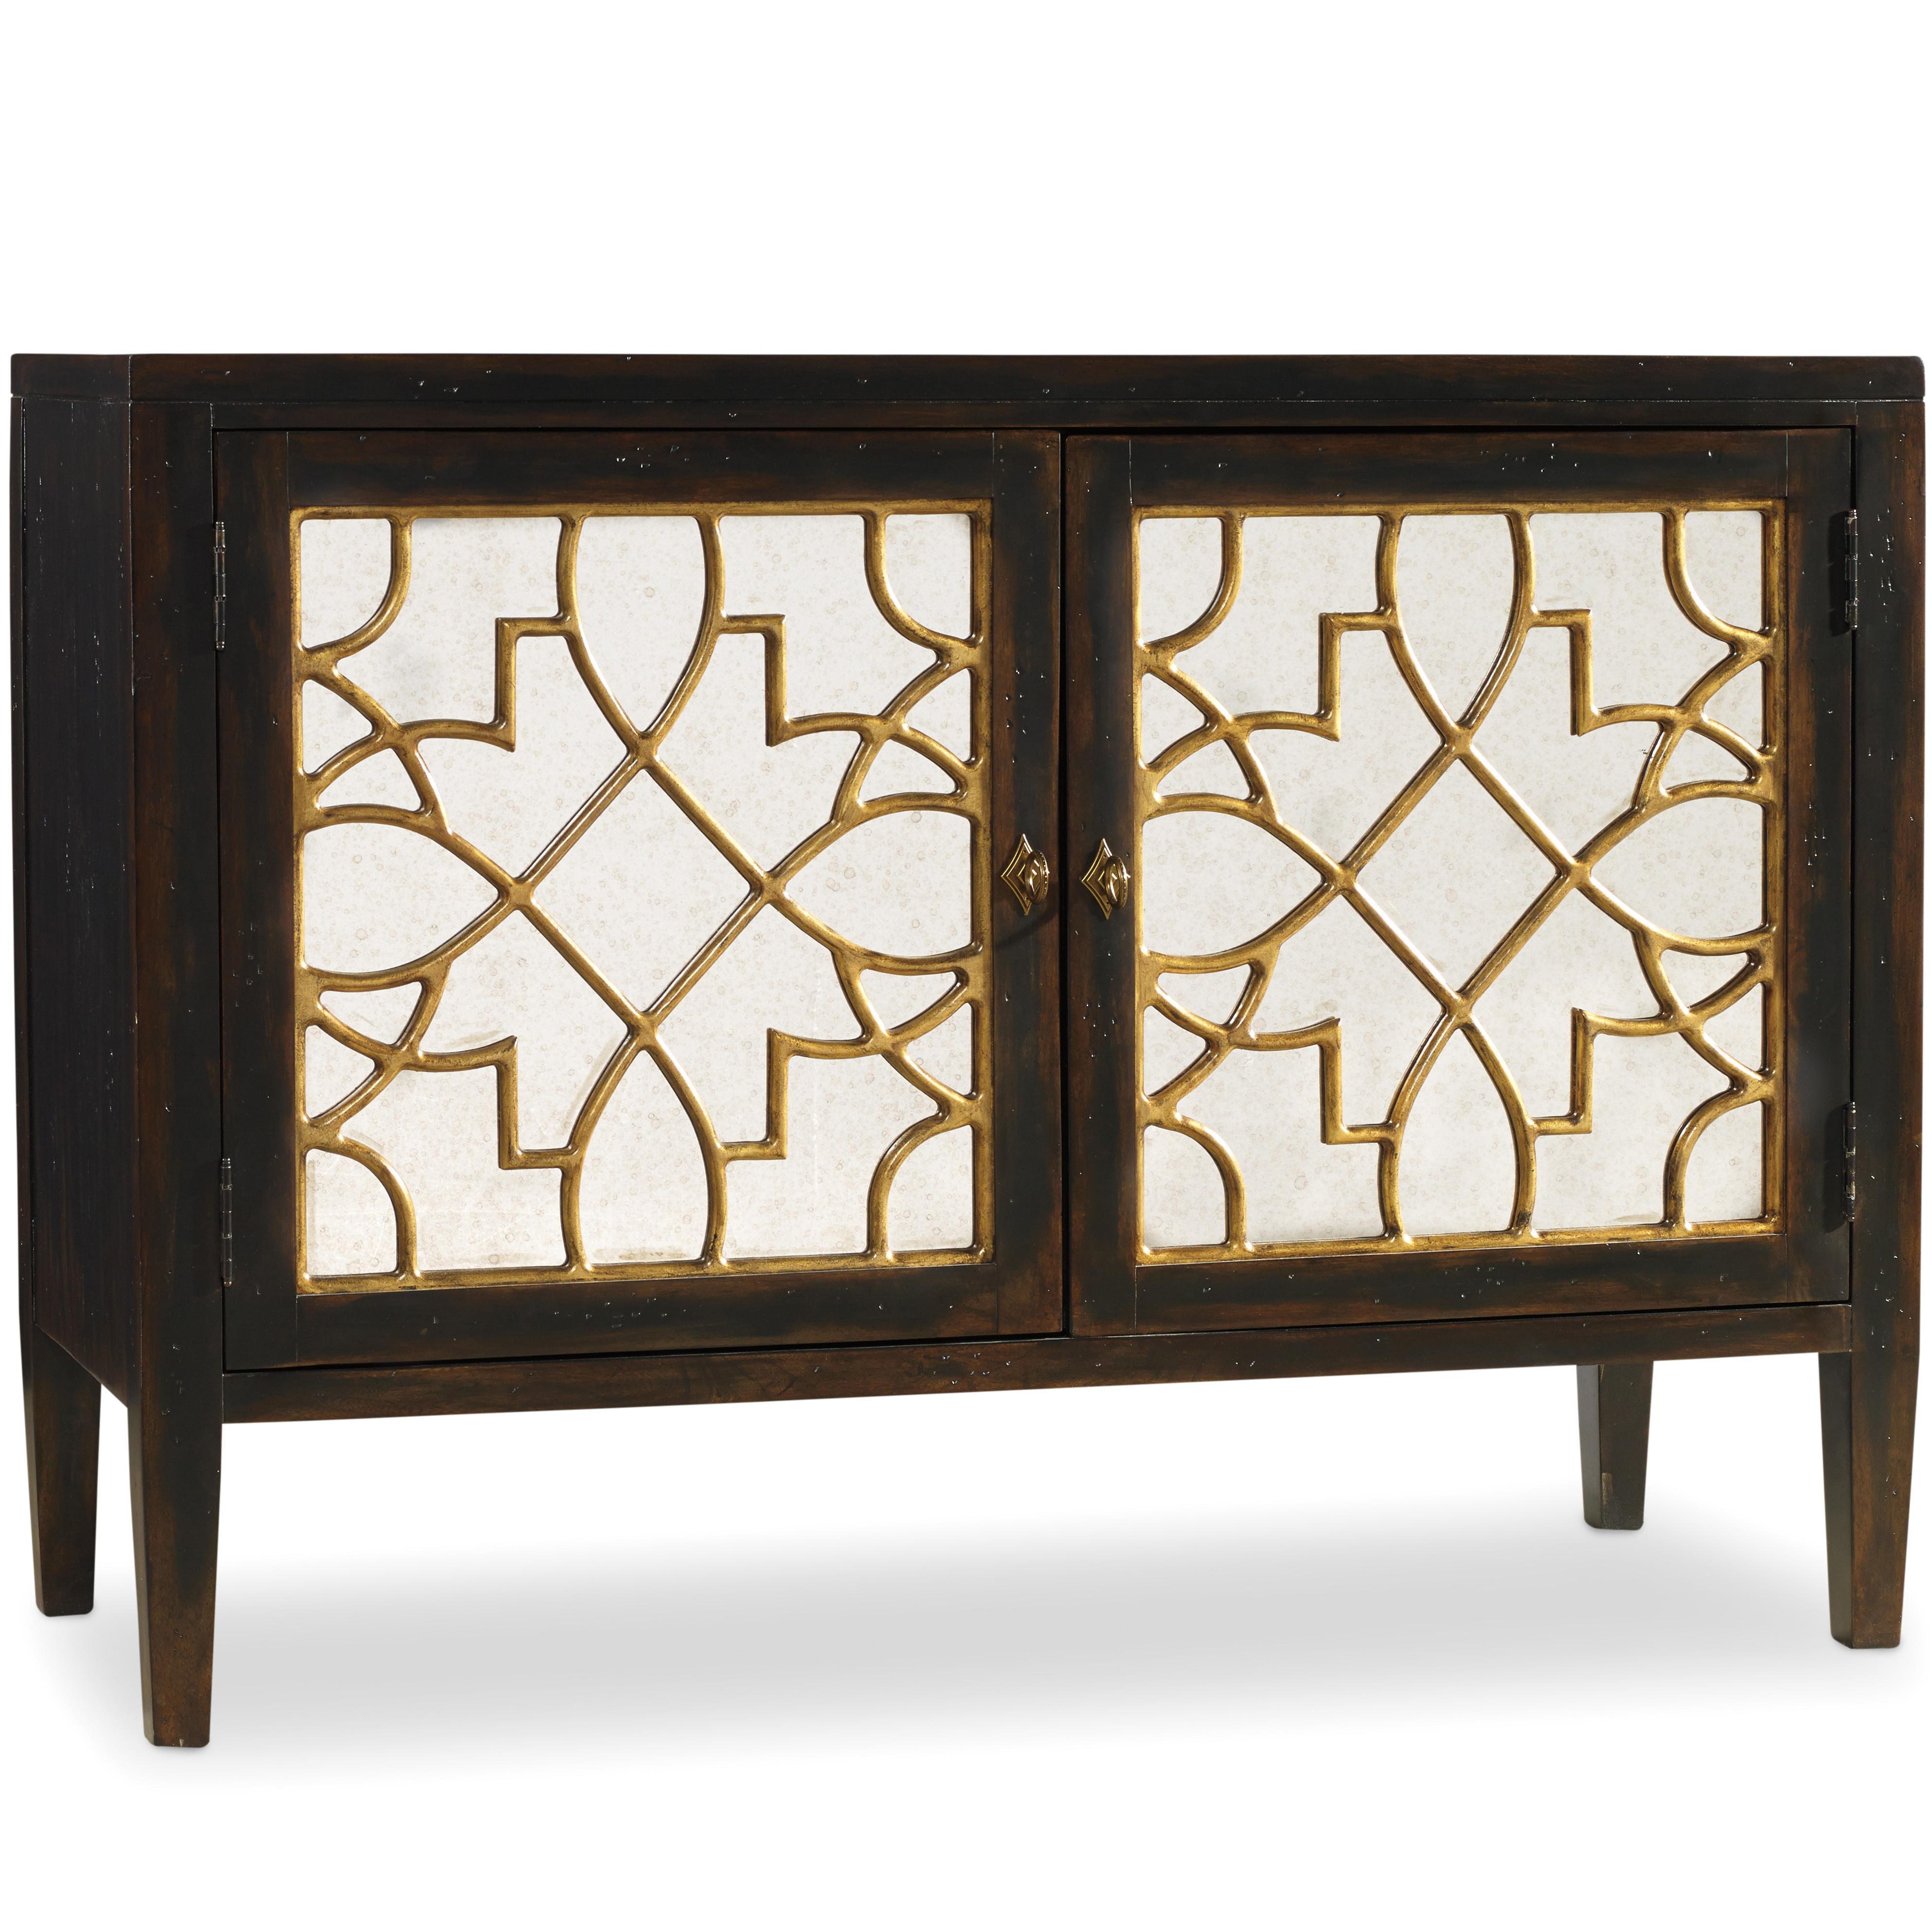 Hooker Furniture Sanctuary 2 Door Mirrored Console - Item Number: 3005-85006